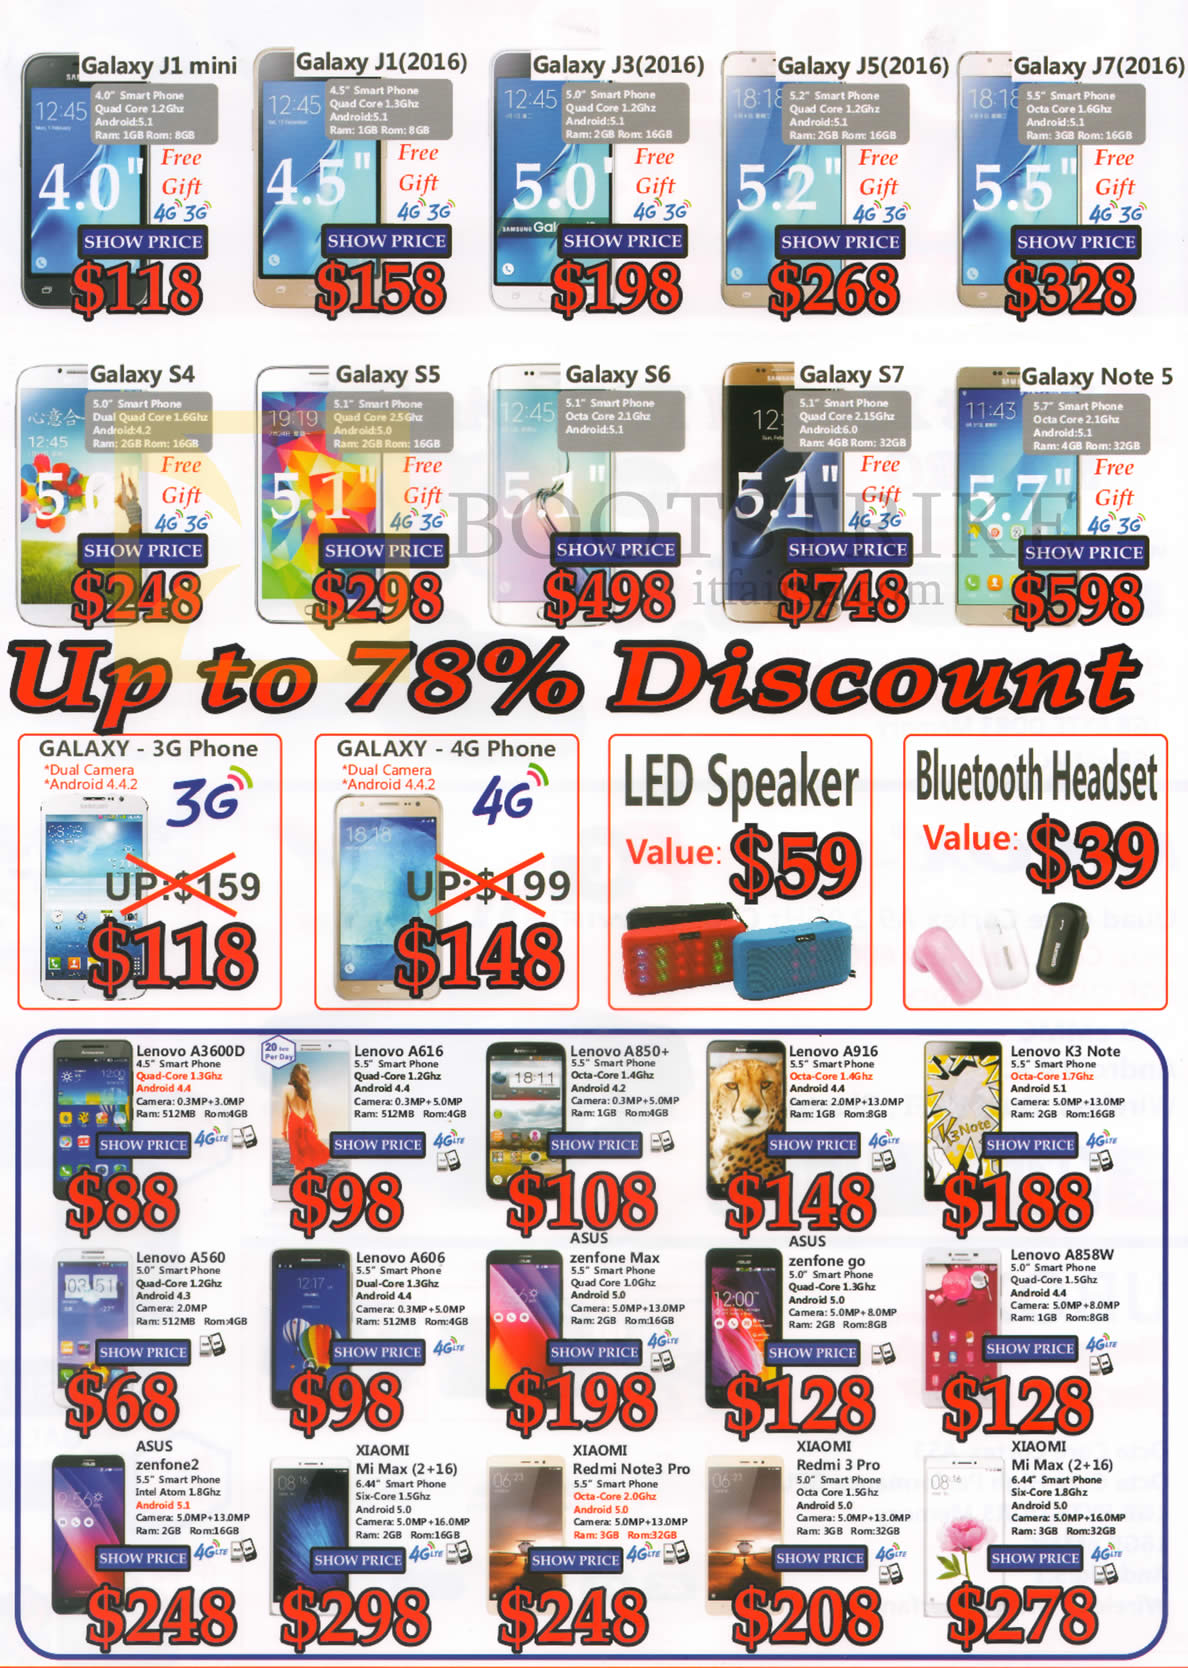 COMEX 2016 price list image brochure of J2 Mobile Phones, Notebooks, Speakers, Bluetooth Headset, Scooters, Getek, Samsung, Xiaomi, Lenovo, Apple, Asus, HP, Dell